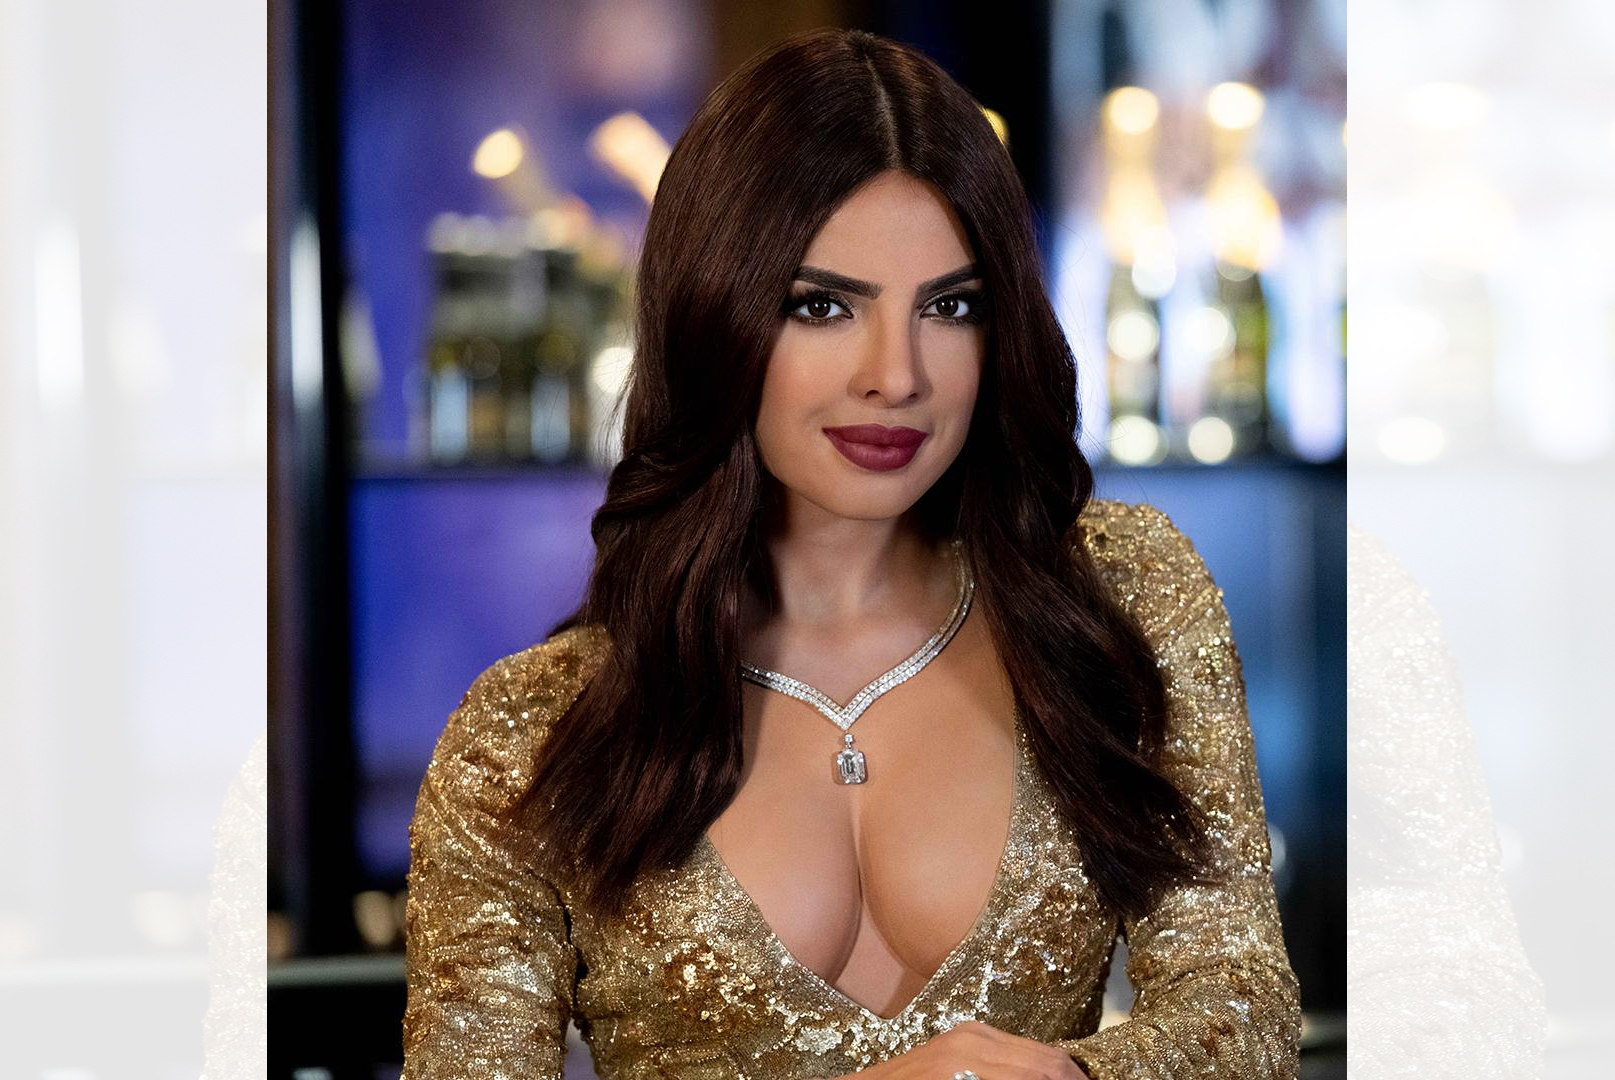 Priyanka Chopra's bold wax figure unveiled in London